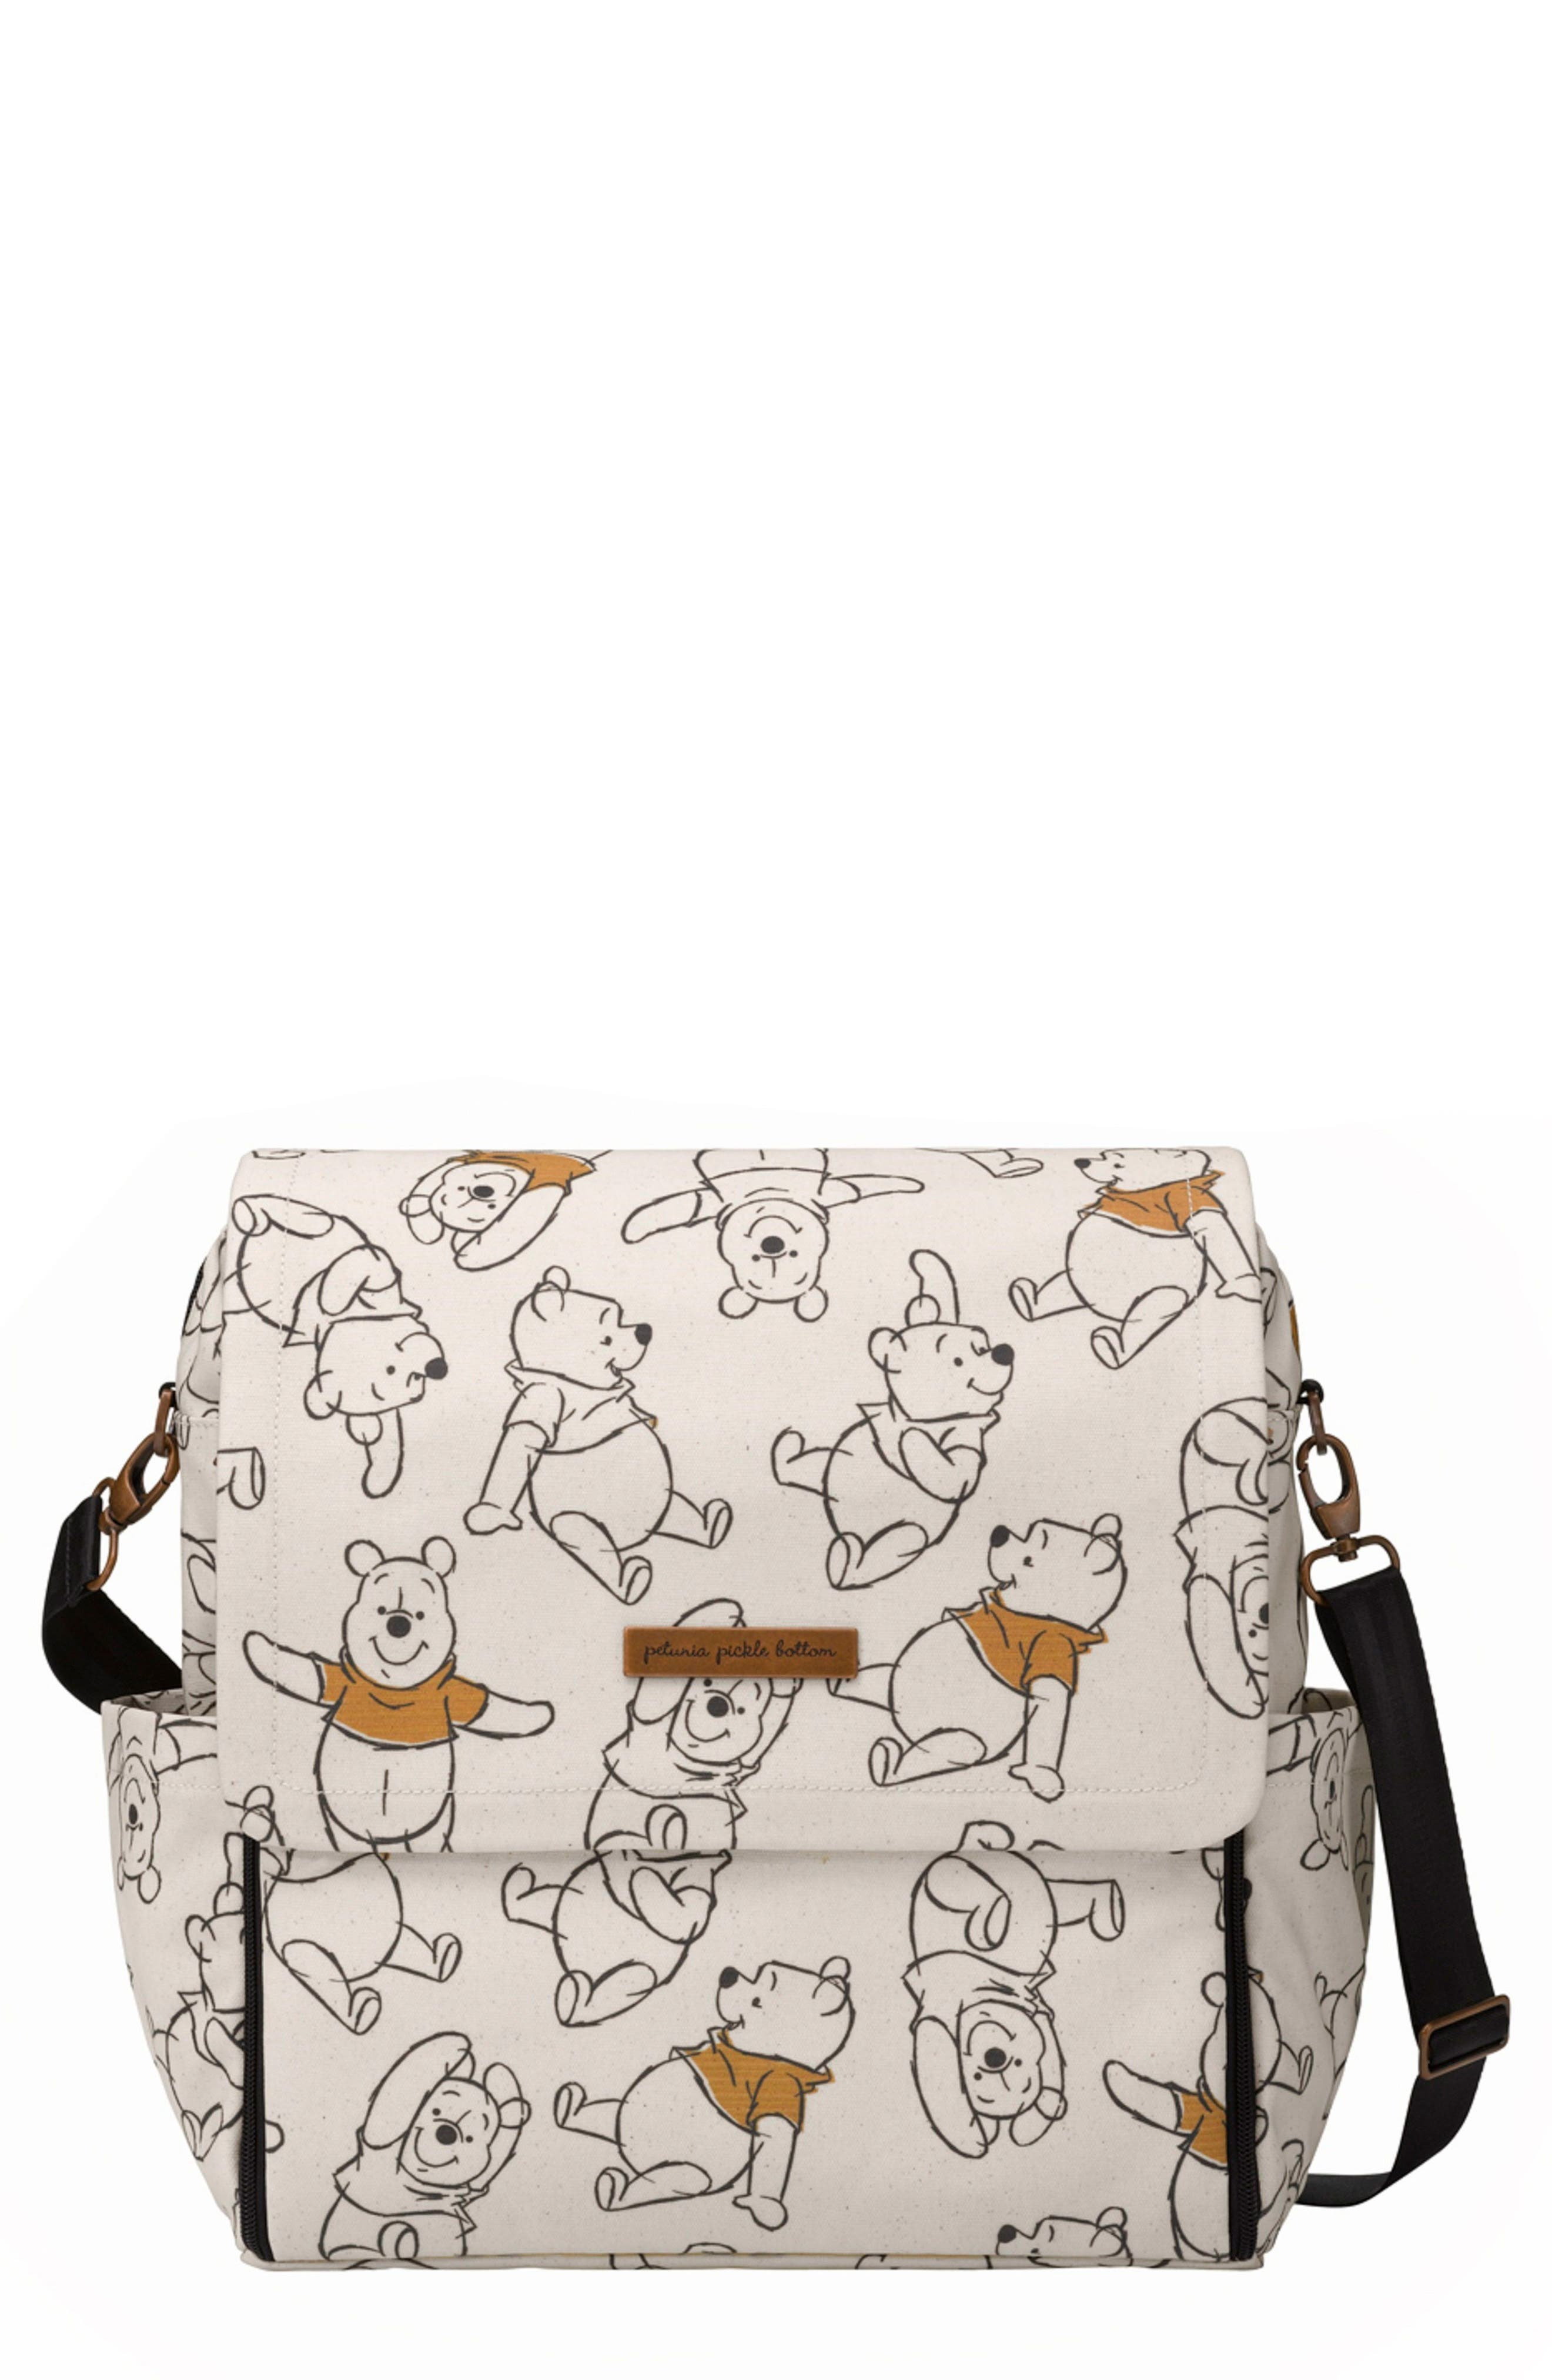 Boxy Backpack - Disney Diaper Bag,                             Main thumbnail 1, color,                             SKETCHBOOK WINNIE THE POOH